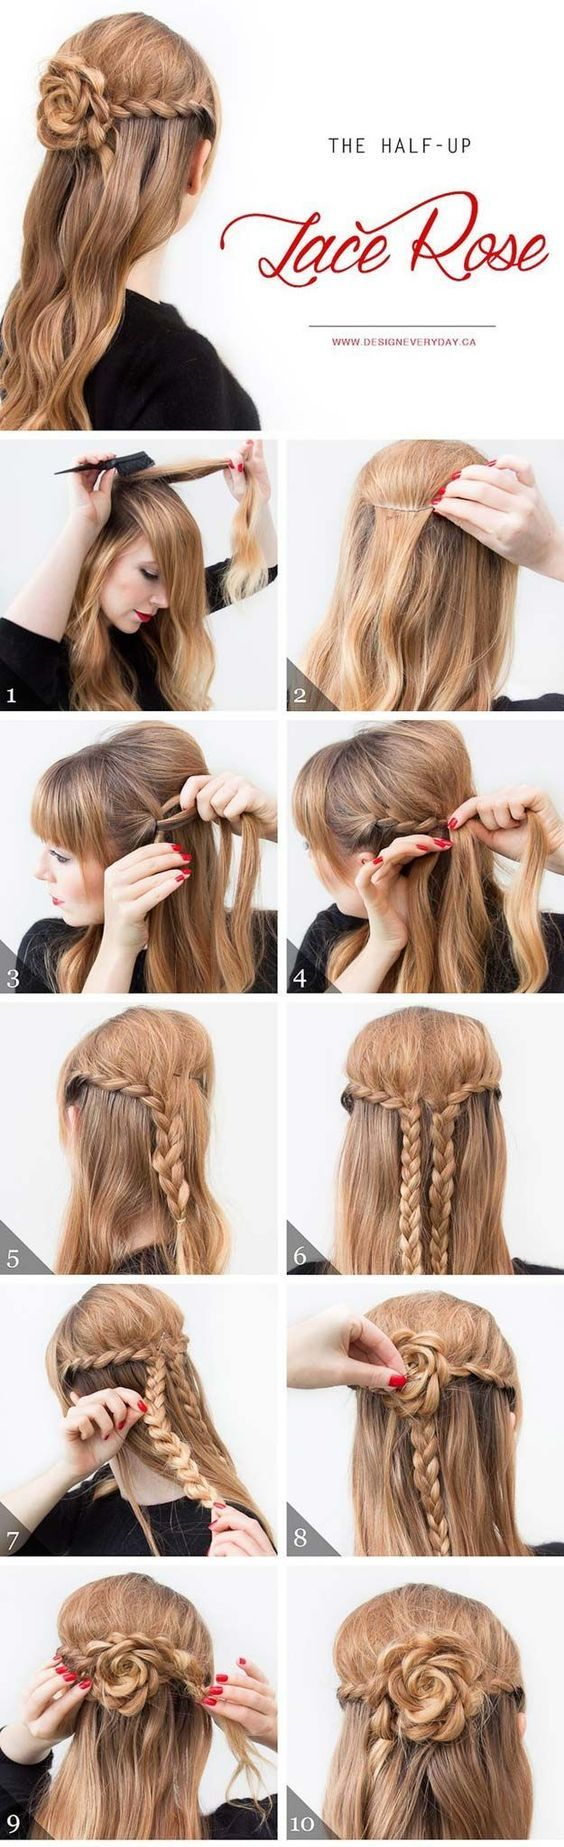 Cool And Easy Diy Hairstyles The Half Up Lace Rose Quick And Easy Ideas For Back To School Styles For Medi Diy Hairstyles Easy Long Hair Styles Hair Styles